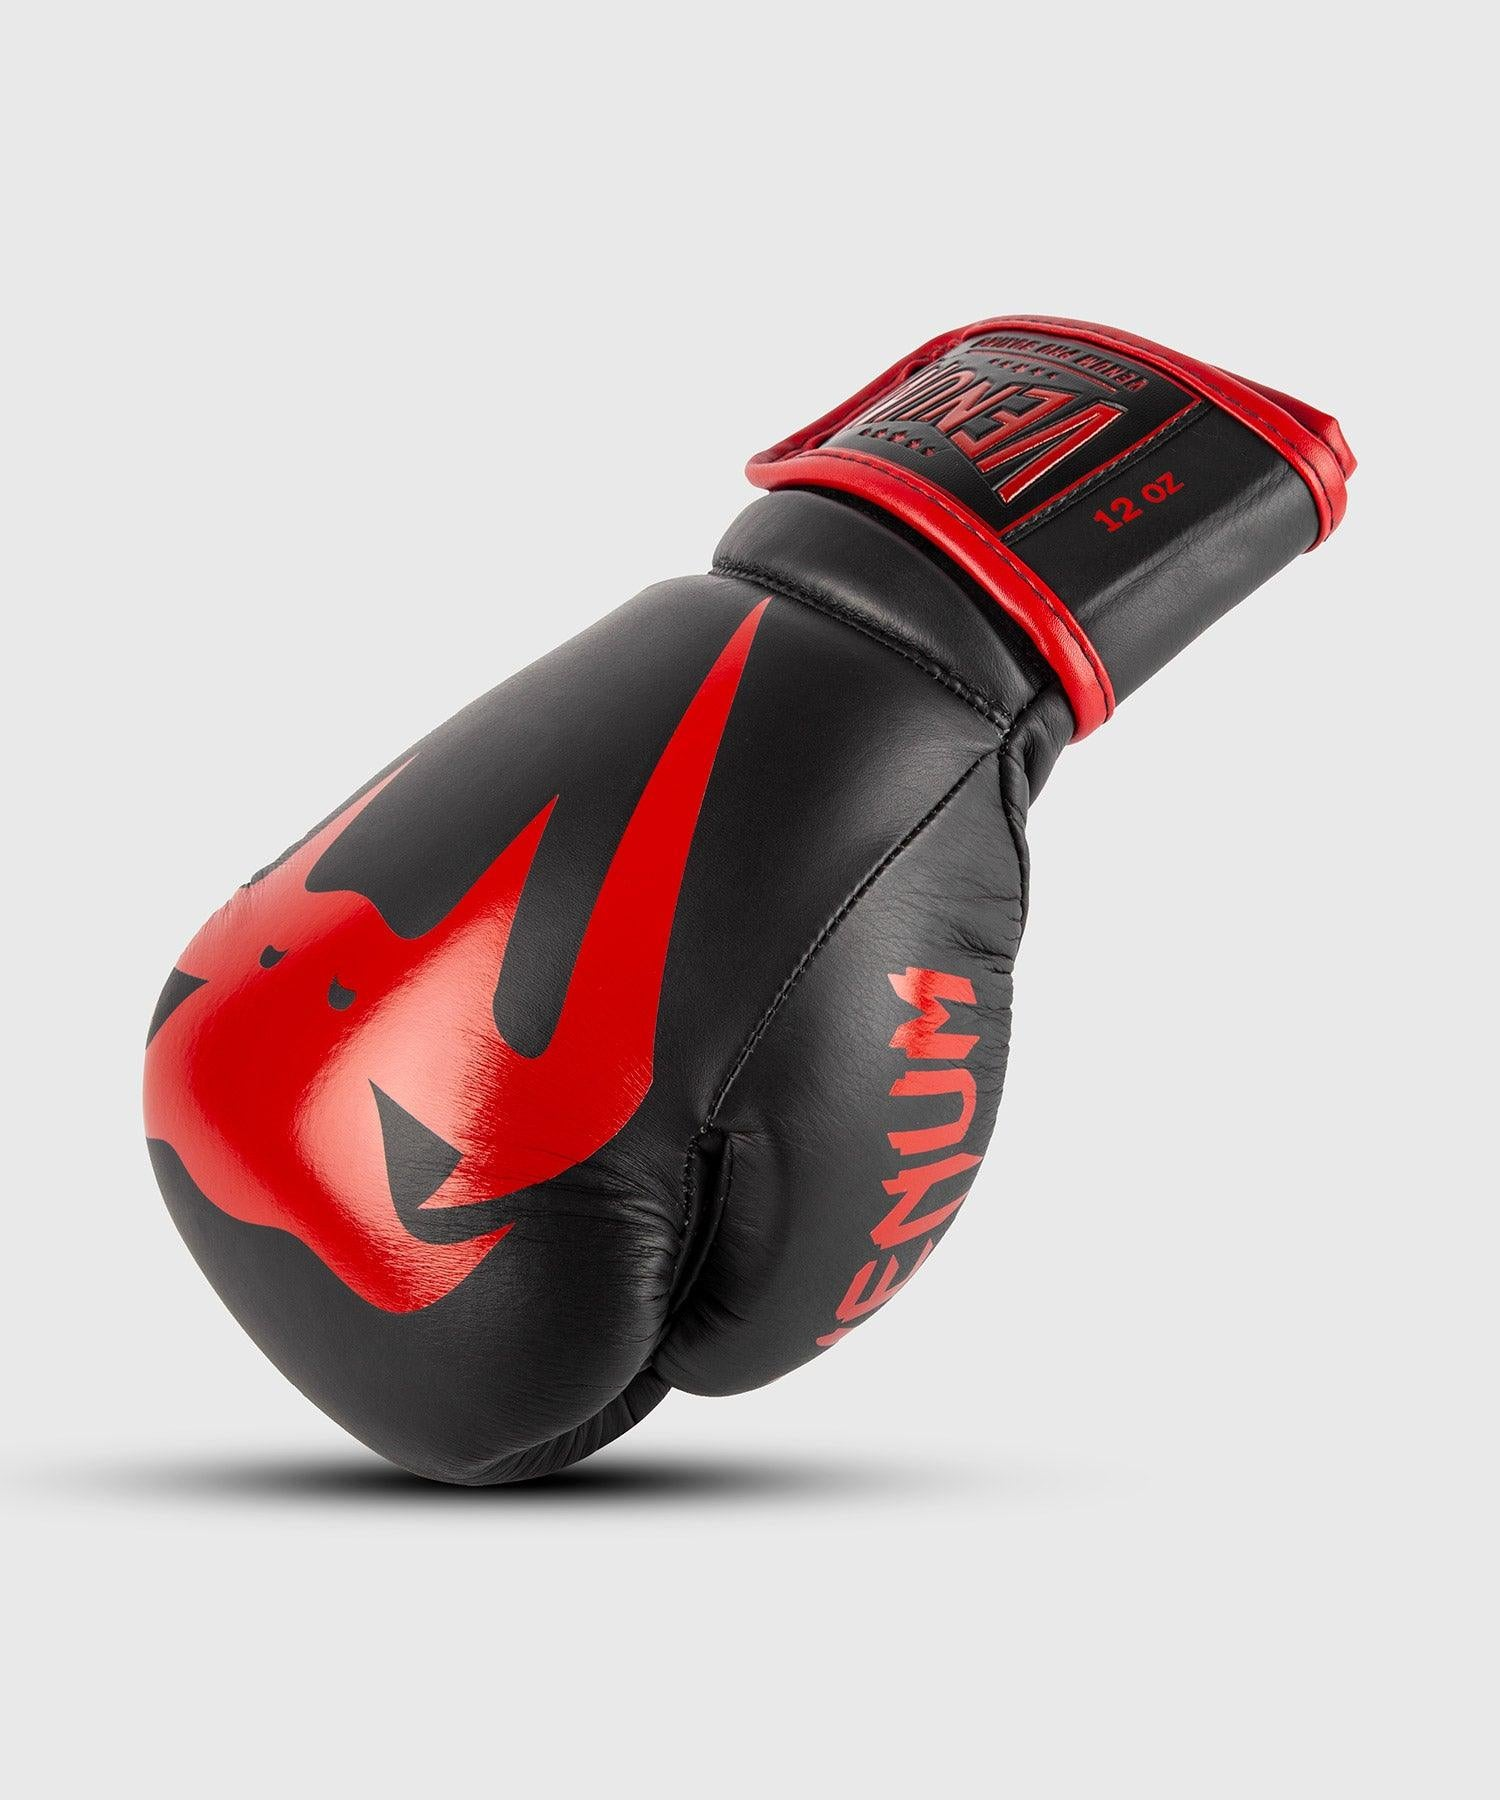 Venum Giant 2.0 Pro Boxing Gloves Velcro - Black/Red picture 1